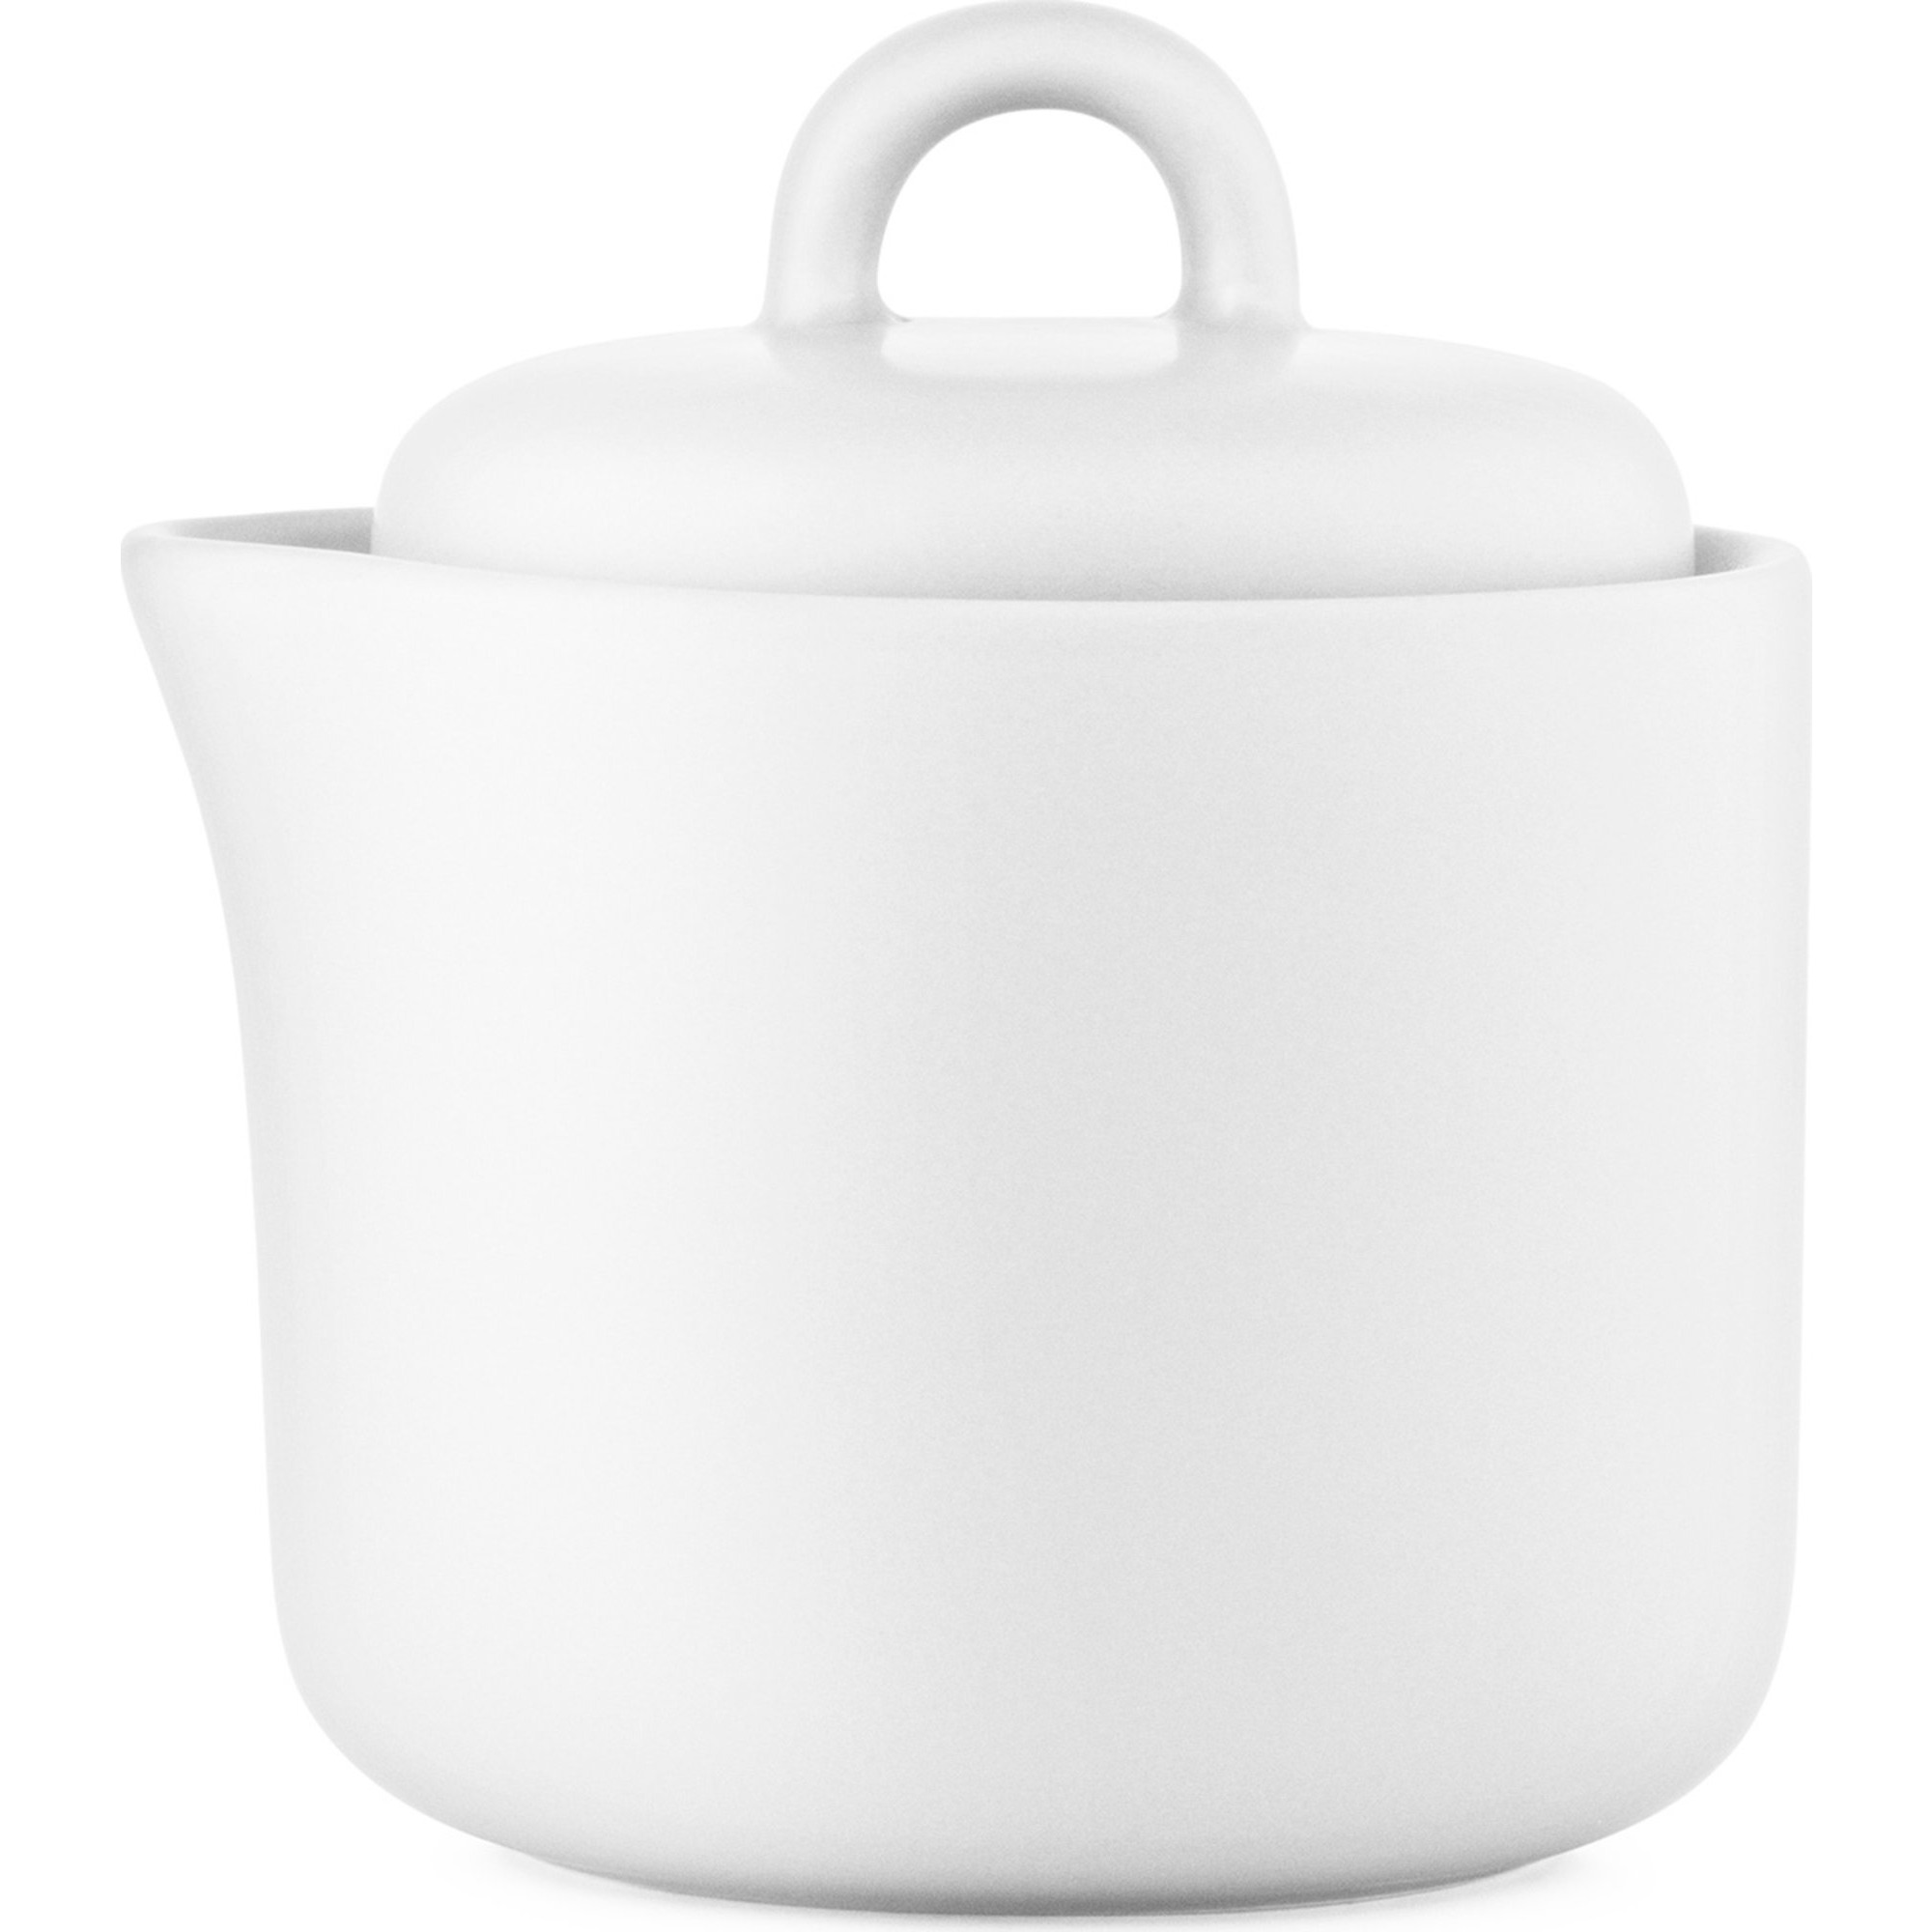 Normann Copenhagen Bliss Sugar Bowl 30 cl. White